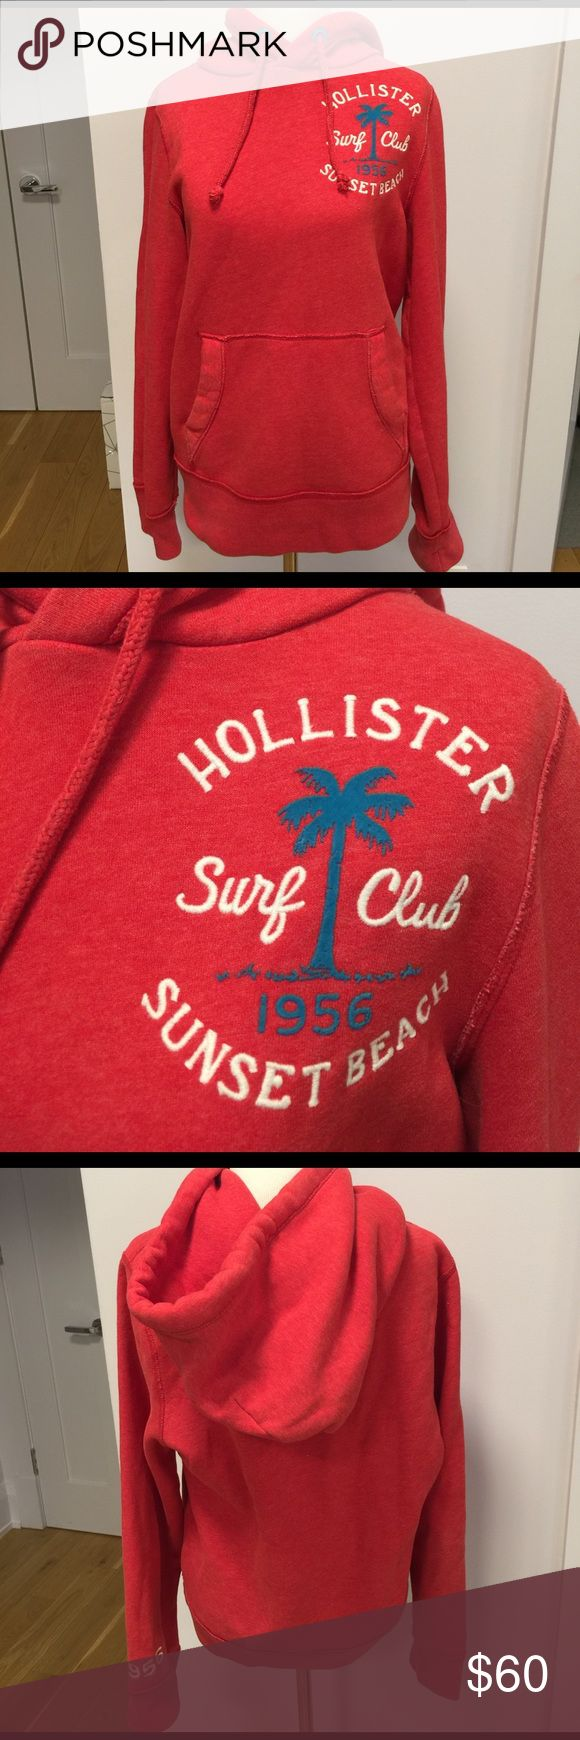 """Red Hollister Sweatshirt Size Small Palm tree decal with Hollister Surf Club Sunset Beach embroidery. Pocket in front. White embroidery on the left cuff, """"1956"""" Hollister Tops Sweatshirts & Hoodies"""